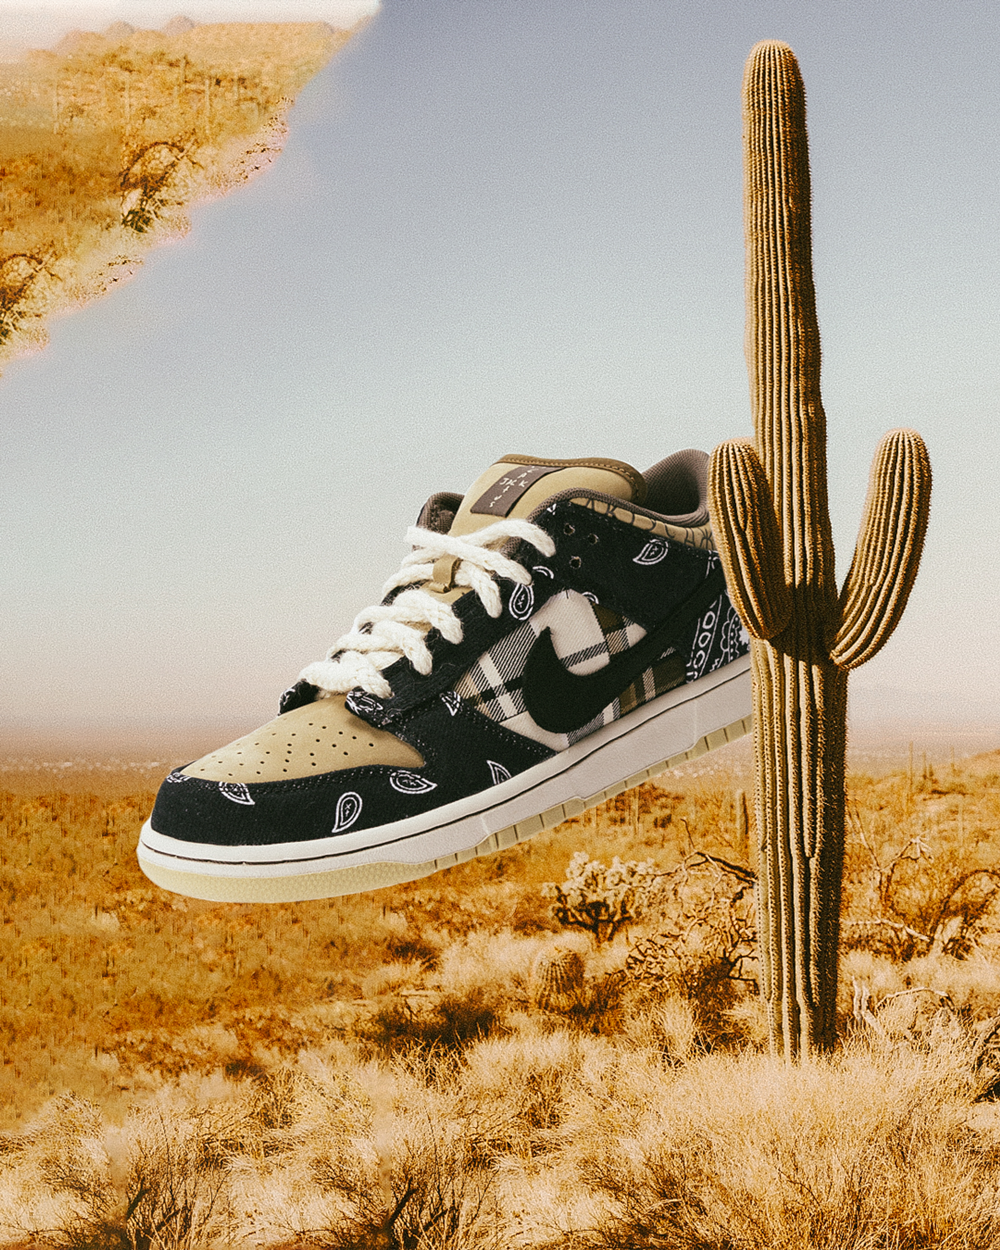 De Nike SB x Travis Scott Dunk Low